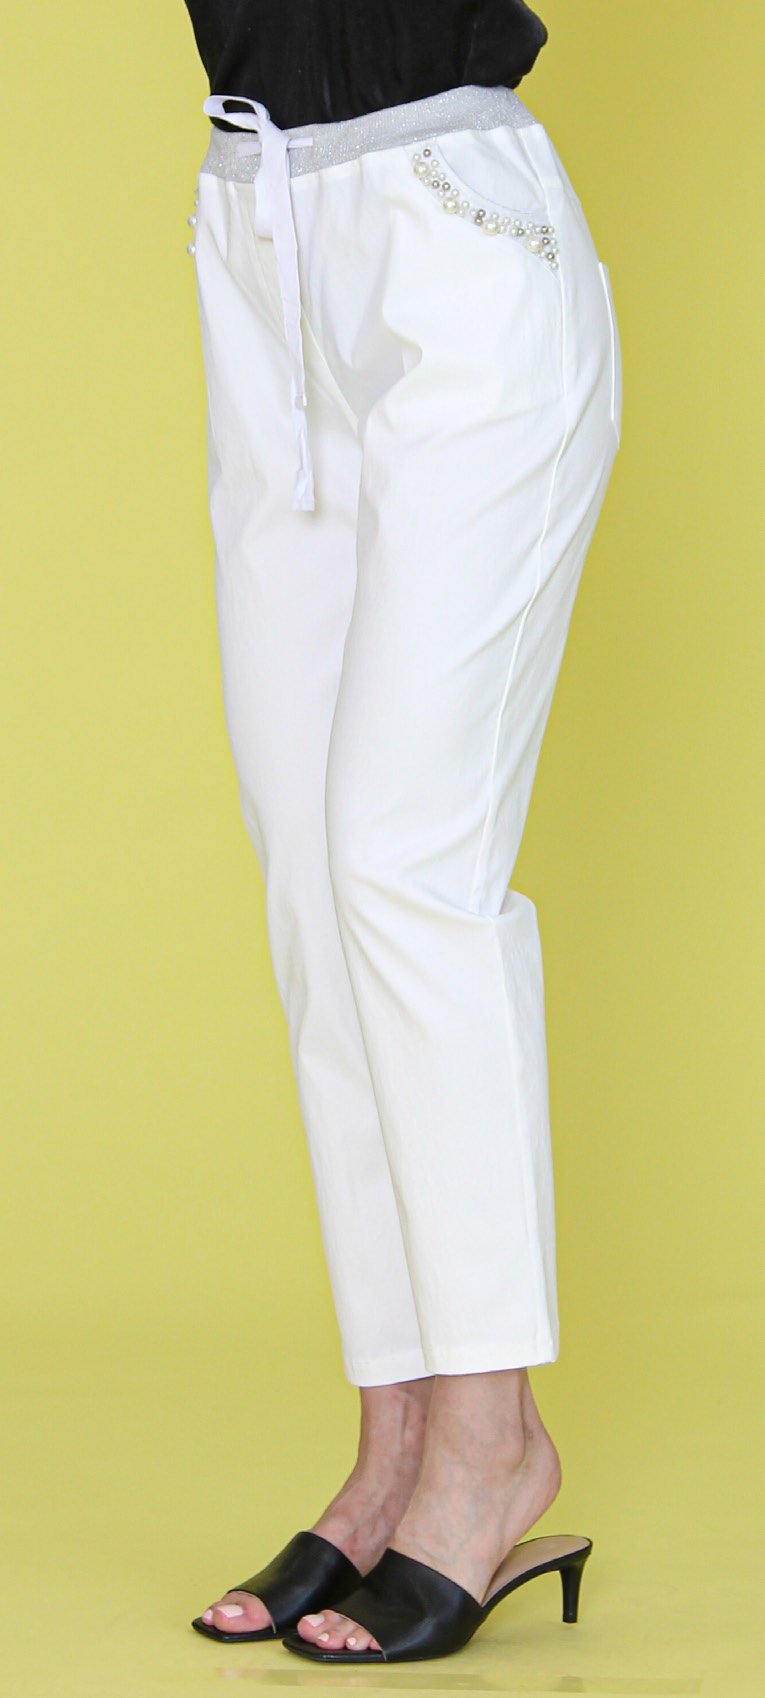 Woven Pants with Pearls